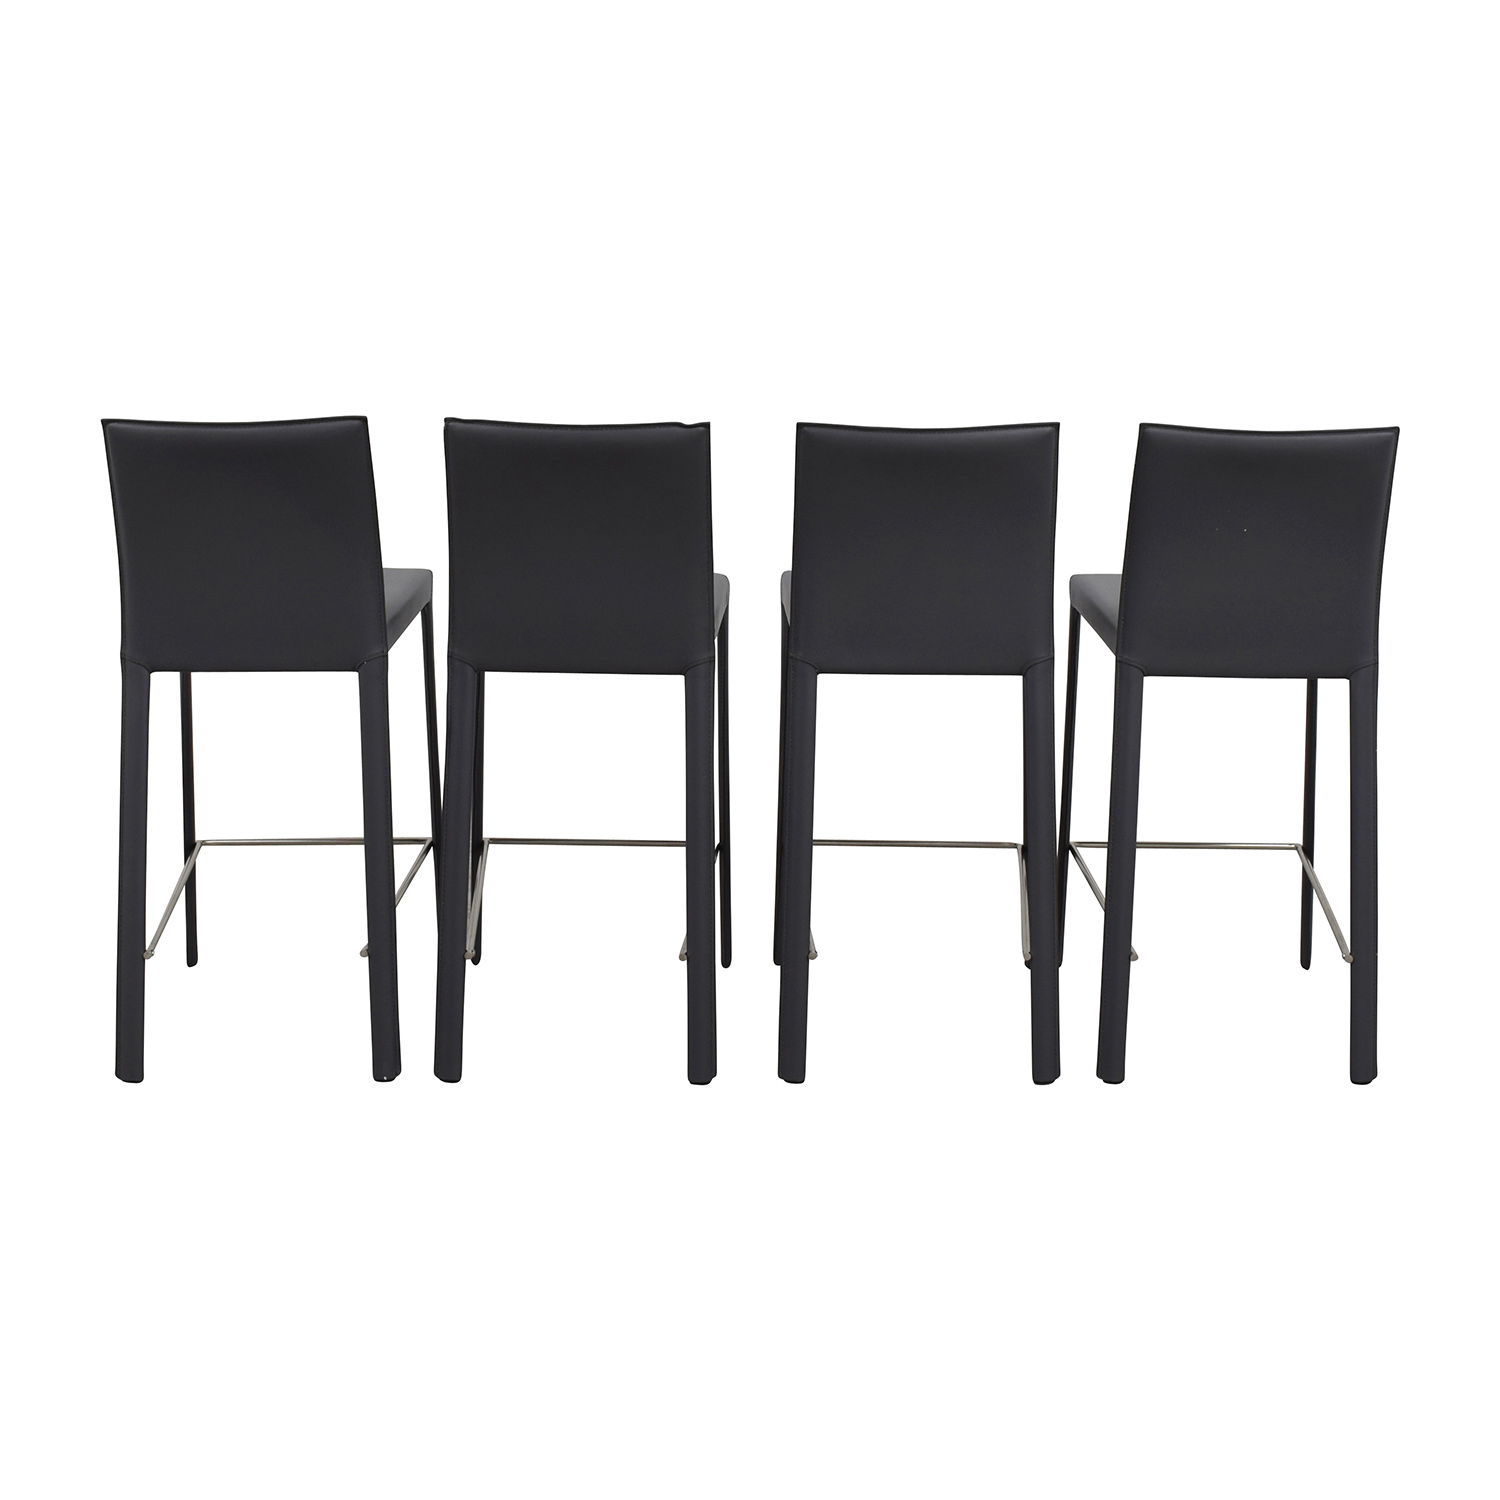 buy InMod Hasina-C Black Leather Counter Stools InMod Stools  sc 1 st  Furnishare & 86% OFF - CorLiving CorLiving White Leatherette Swivel Counter ... islam-shia.org